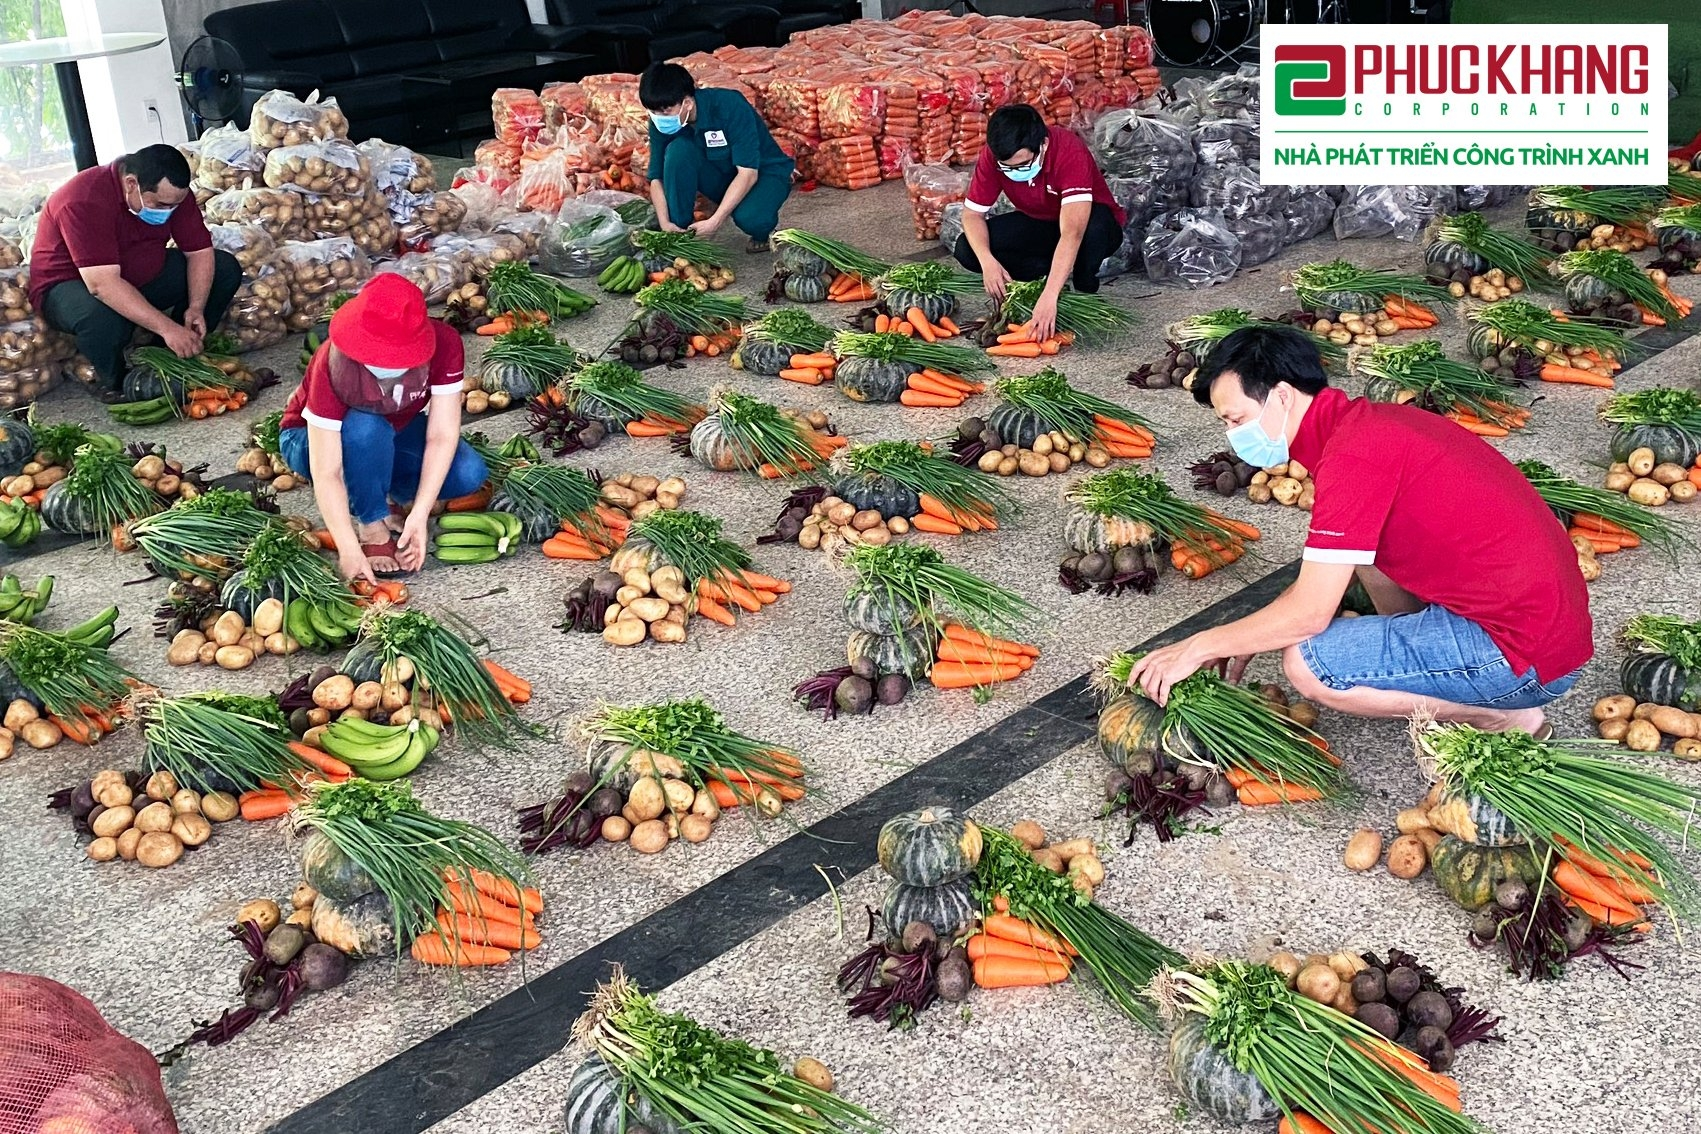 the second campaign giving vegetables with compassion and fighting covid 19 with determination compassionate response